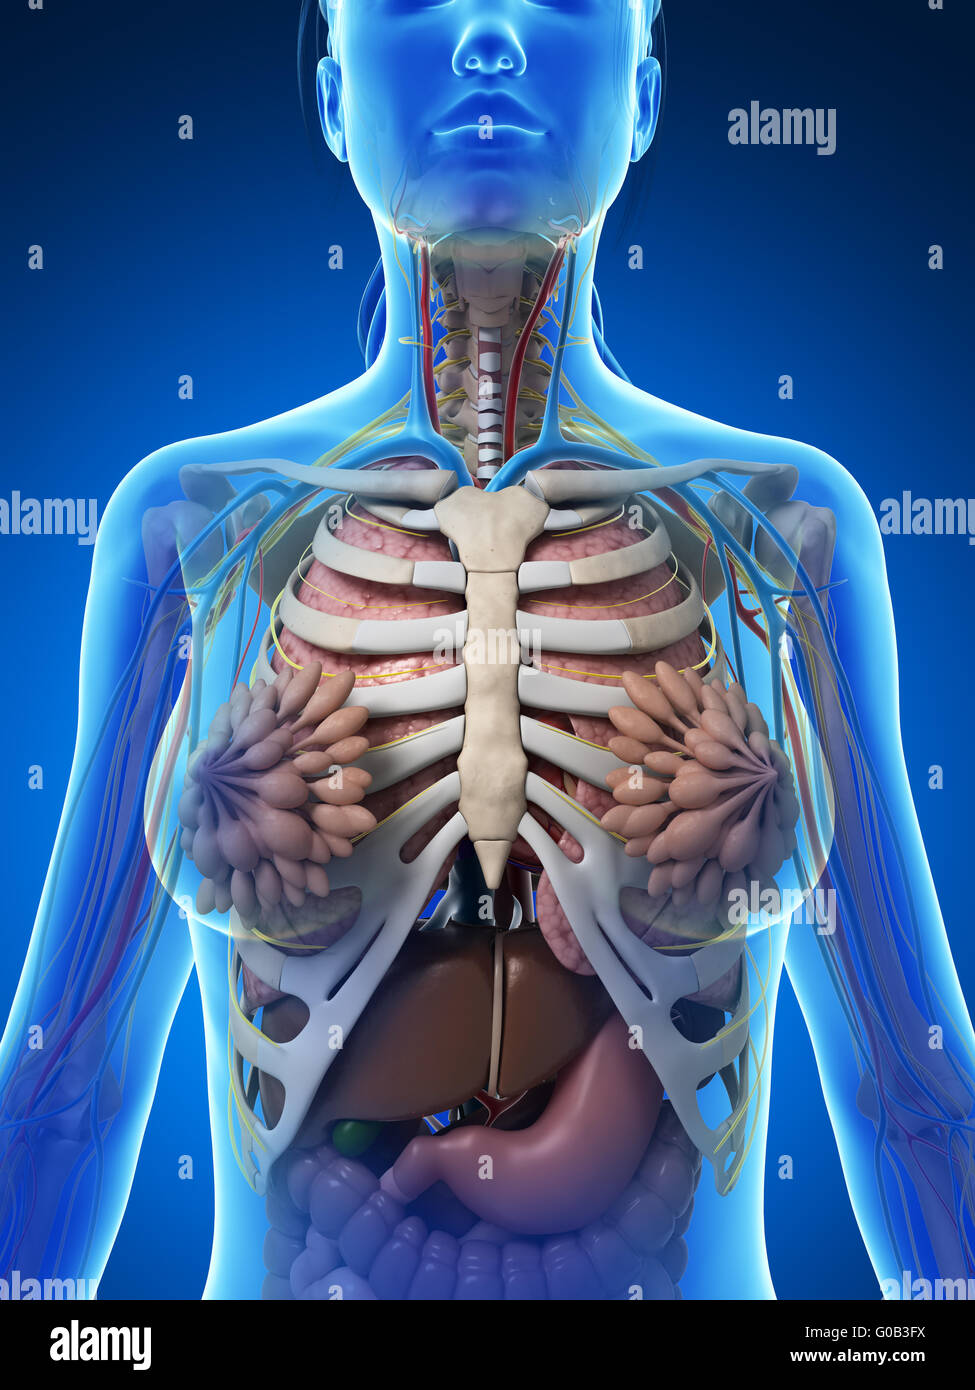 Anatomical Diagram Heart Stomach Stock Photos Anatomical Diagram